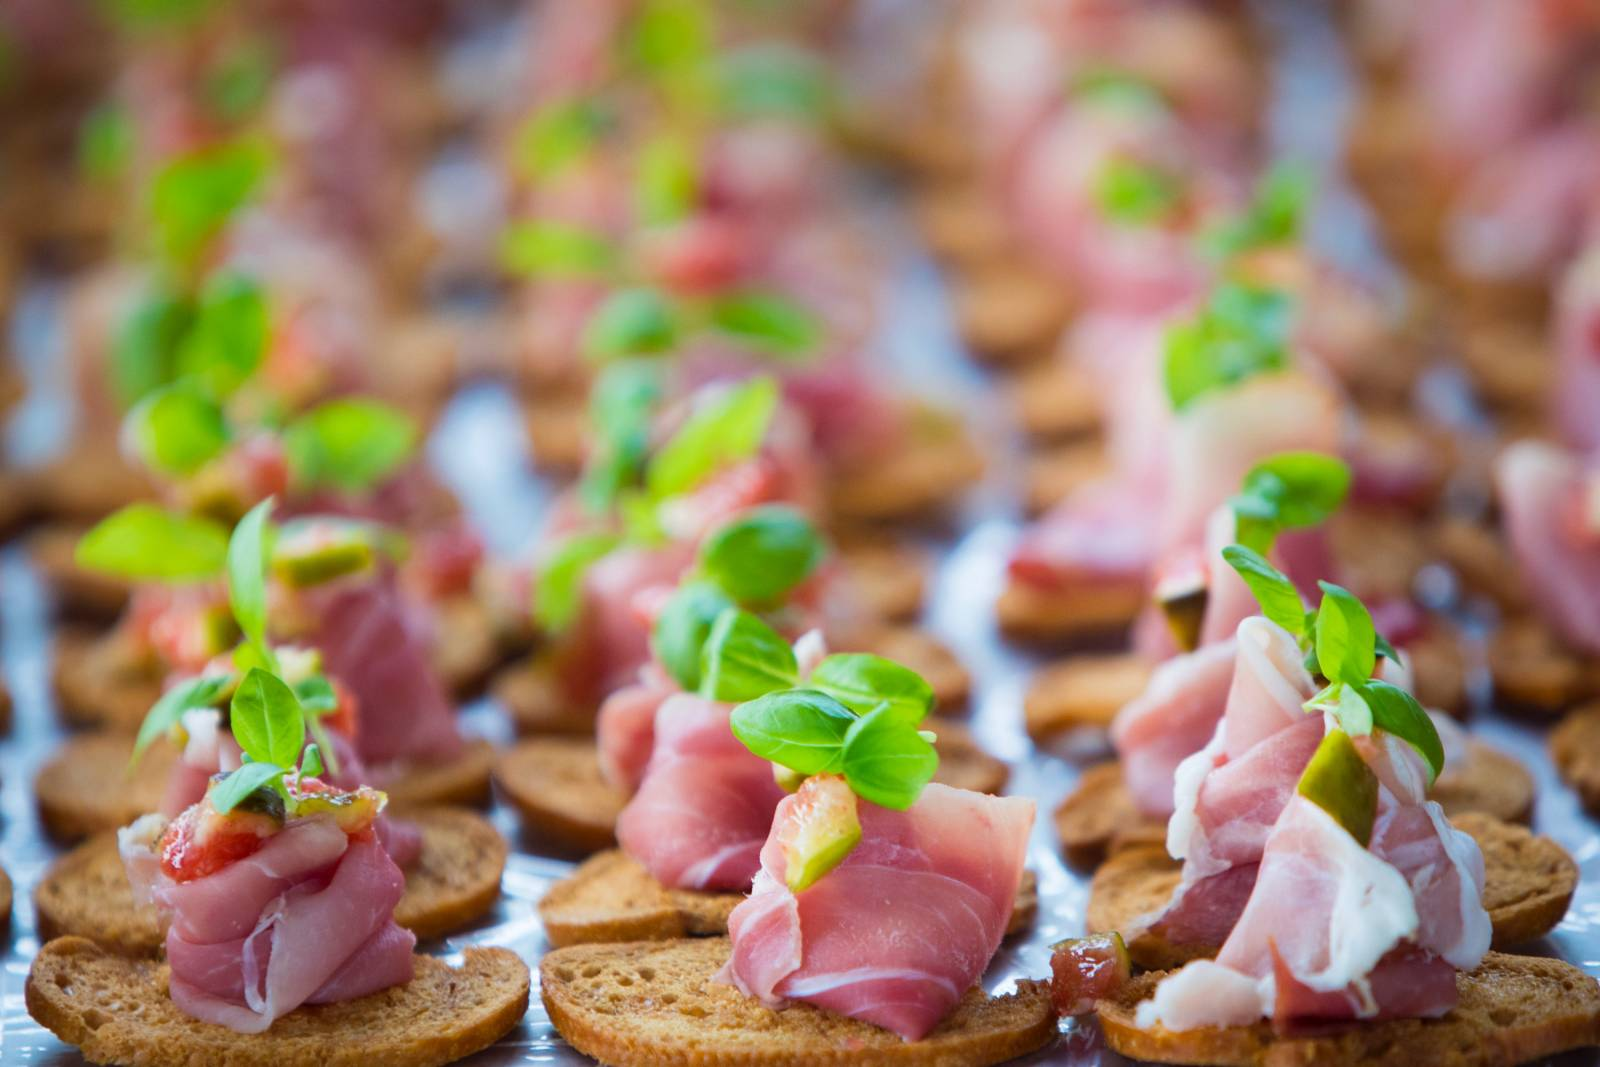 Cuisine Catering - Catering - Traiteur – House of Weddings - 4